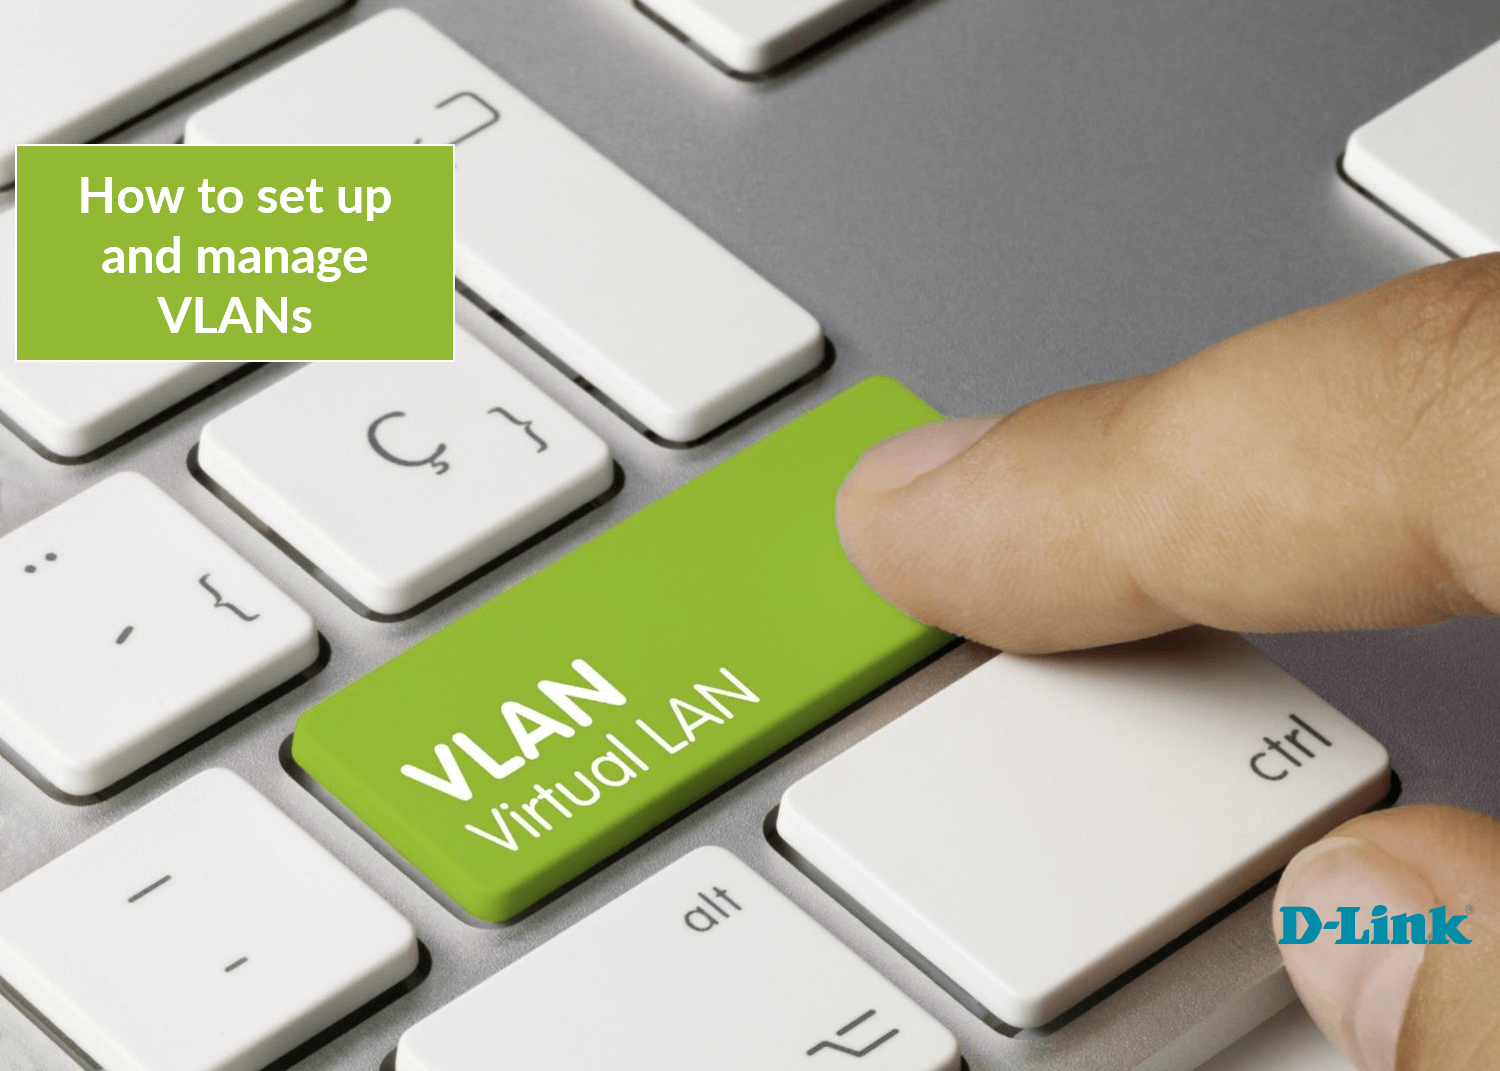 How to VLANs